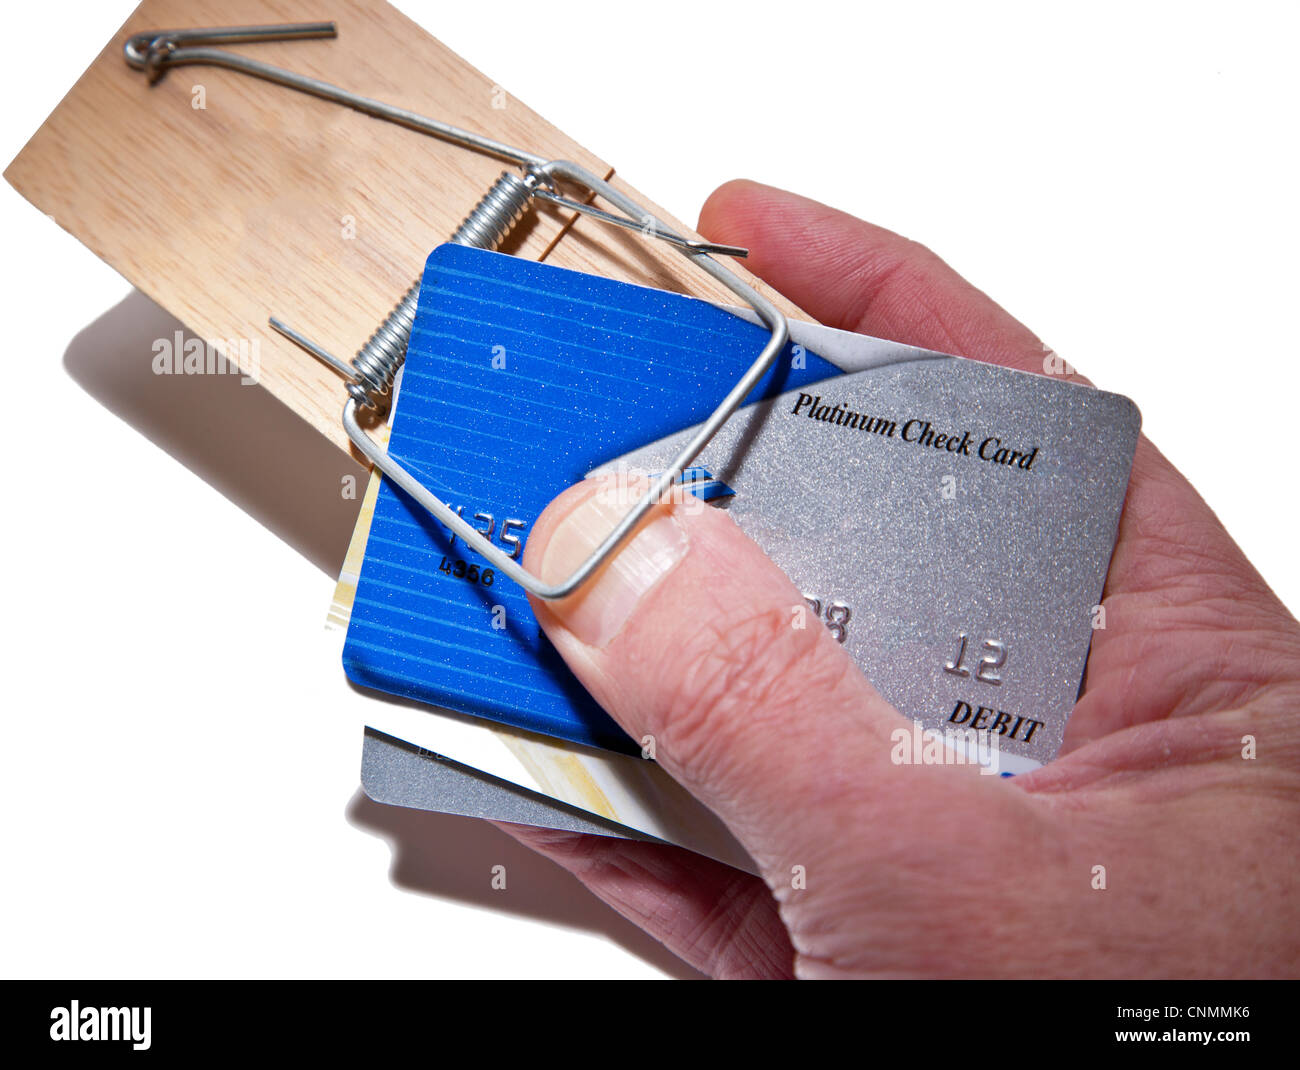 credit cards in mouse trap trapping fingers metaphor for credit card trap etc stock image